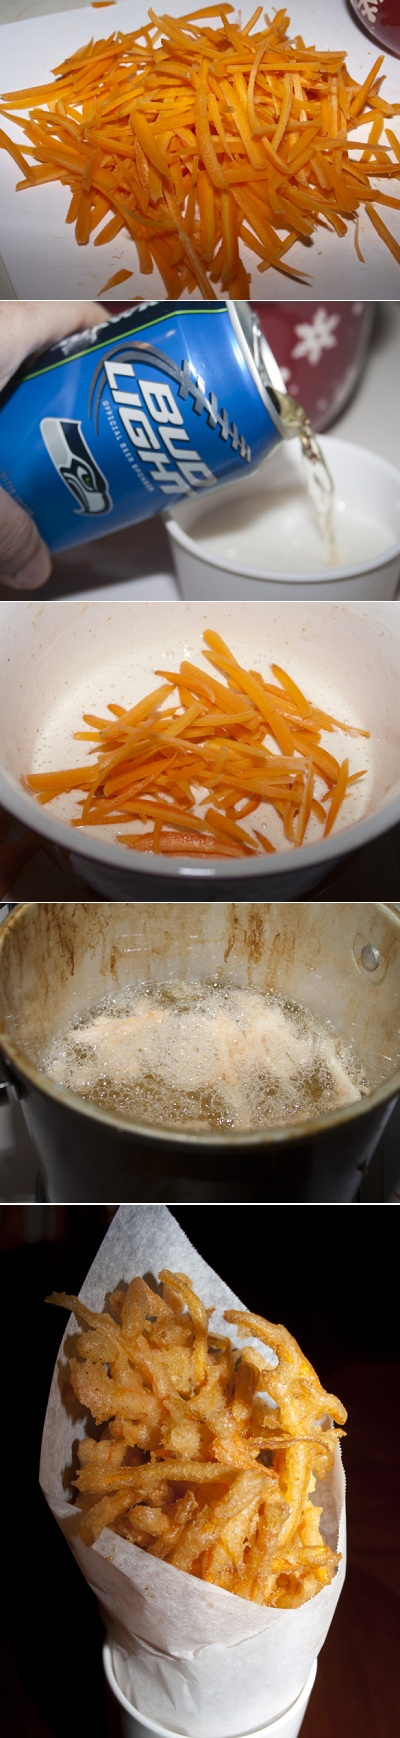 Beer-Battered-Shoestring-Carrots